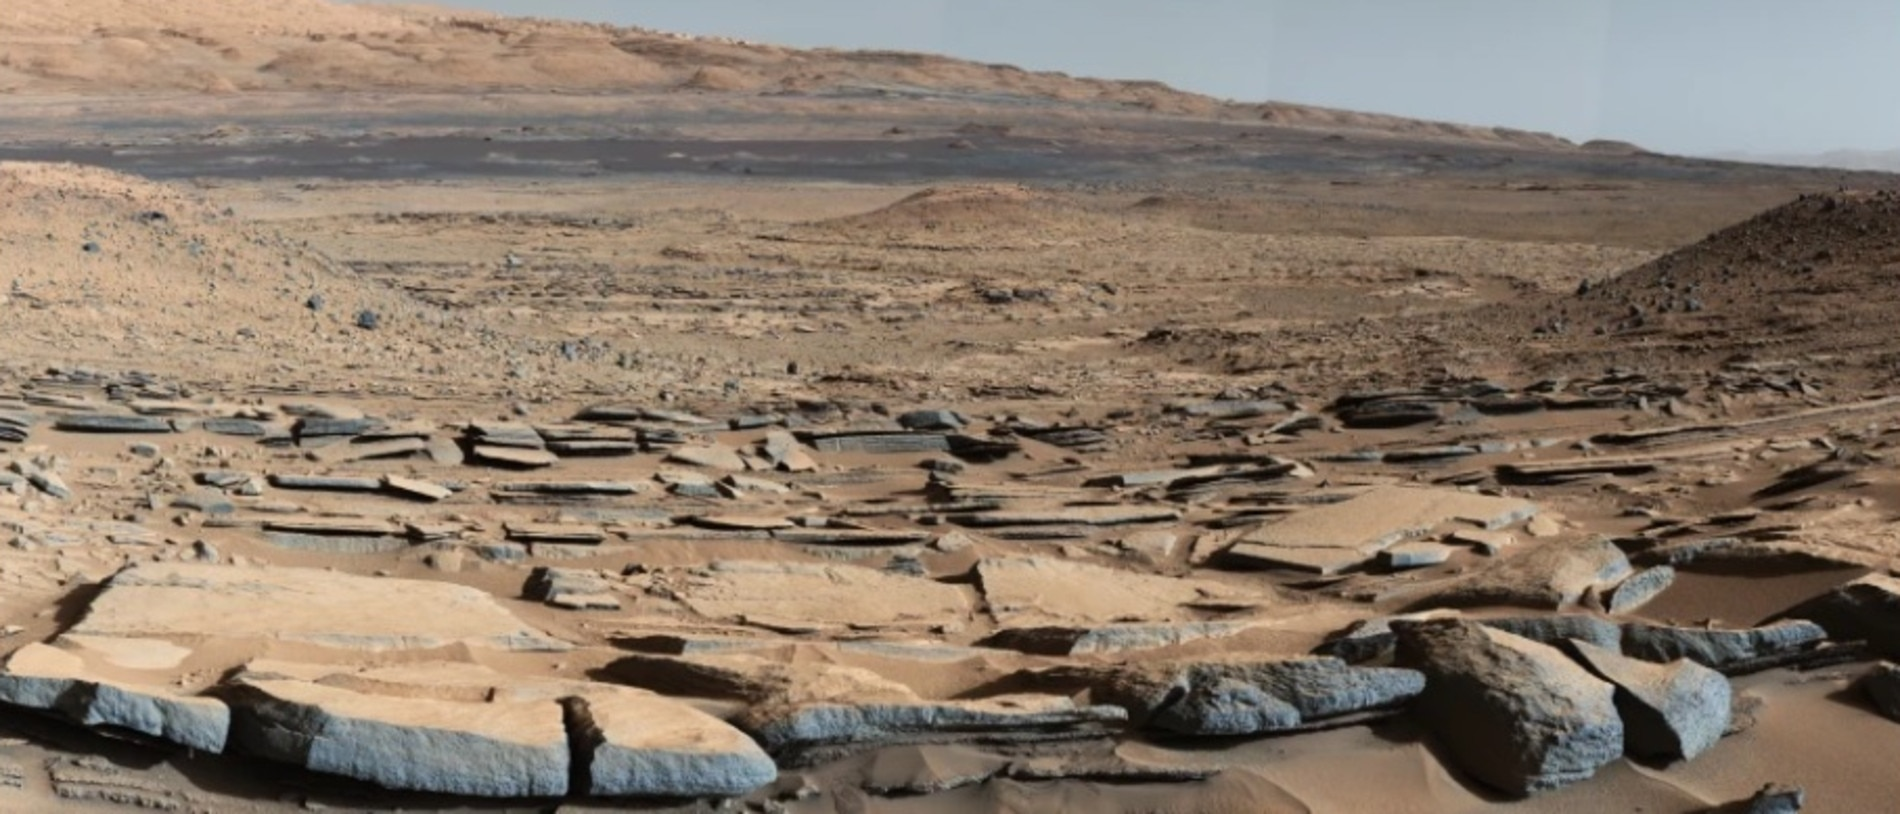 This is the Kimberley formation, snapped by Nasa's Curiosity rover. The way the land dips towards Mount Sharp suggests that water flowed towards a basin that once existed. Picture: NASA